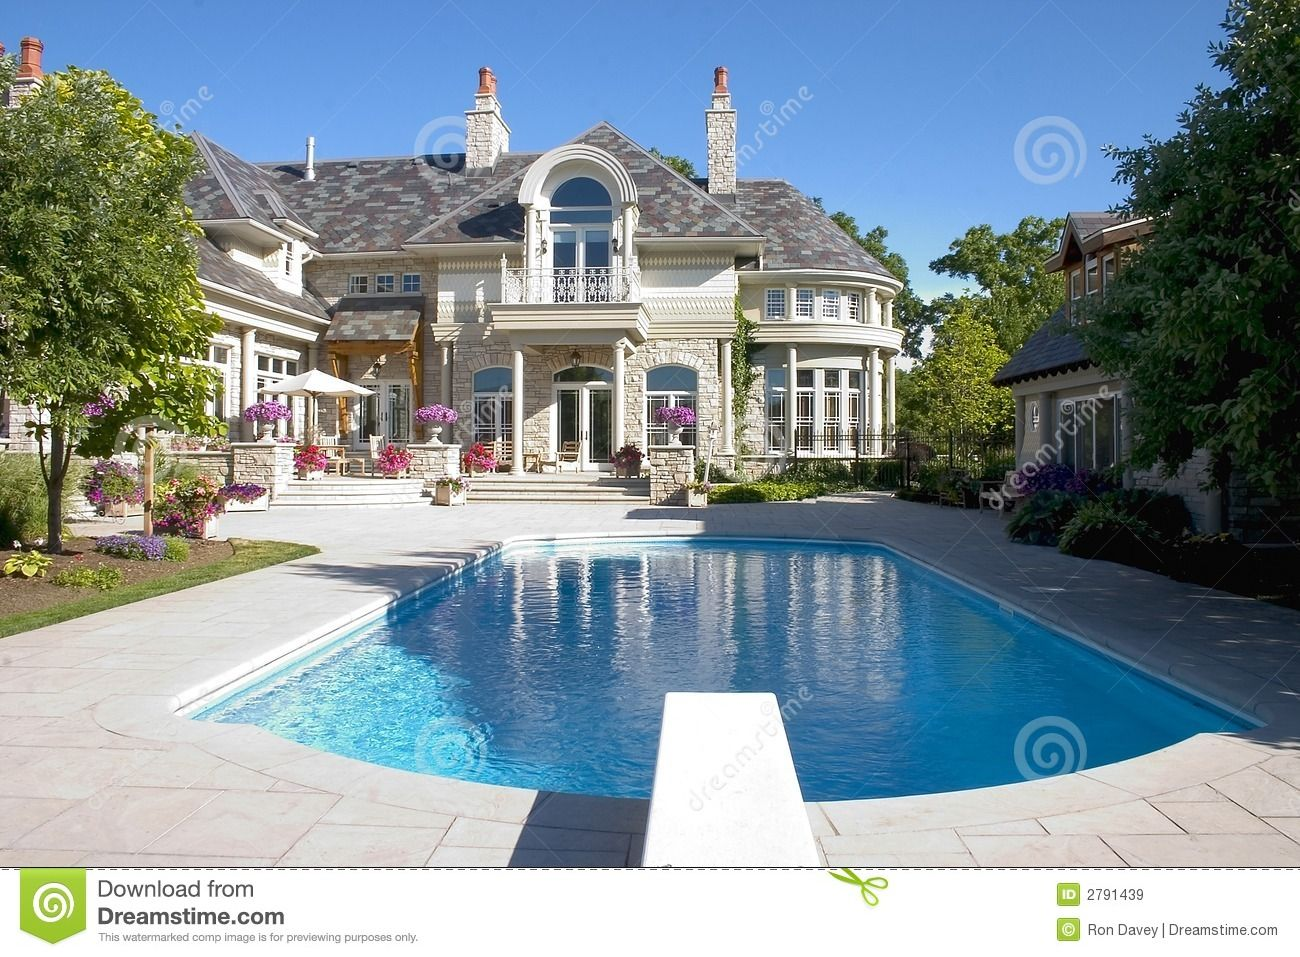 Luxury Homes With Pools 17 best images about lovely mansions on pinterest | luxury houses